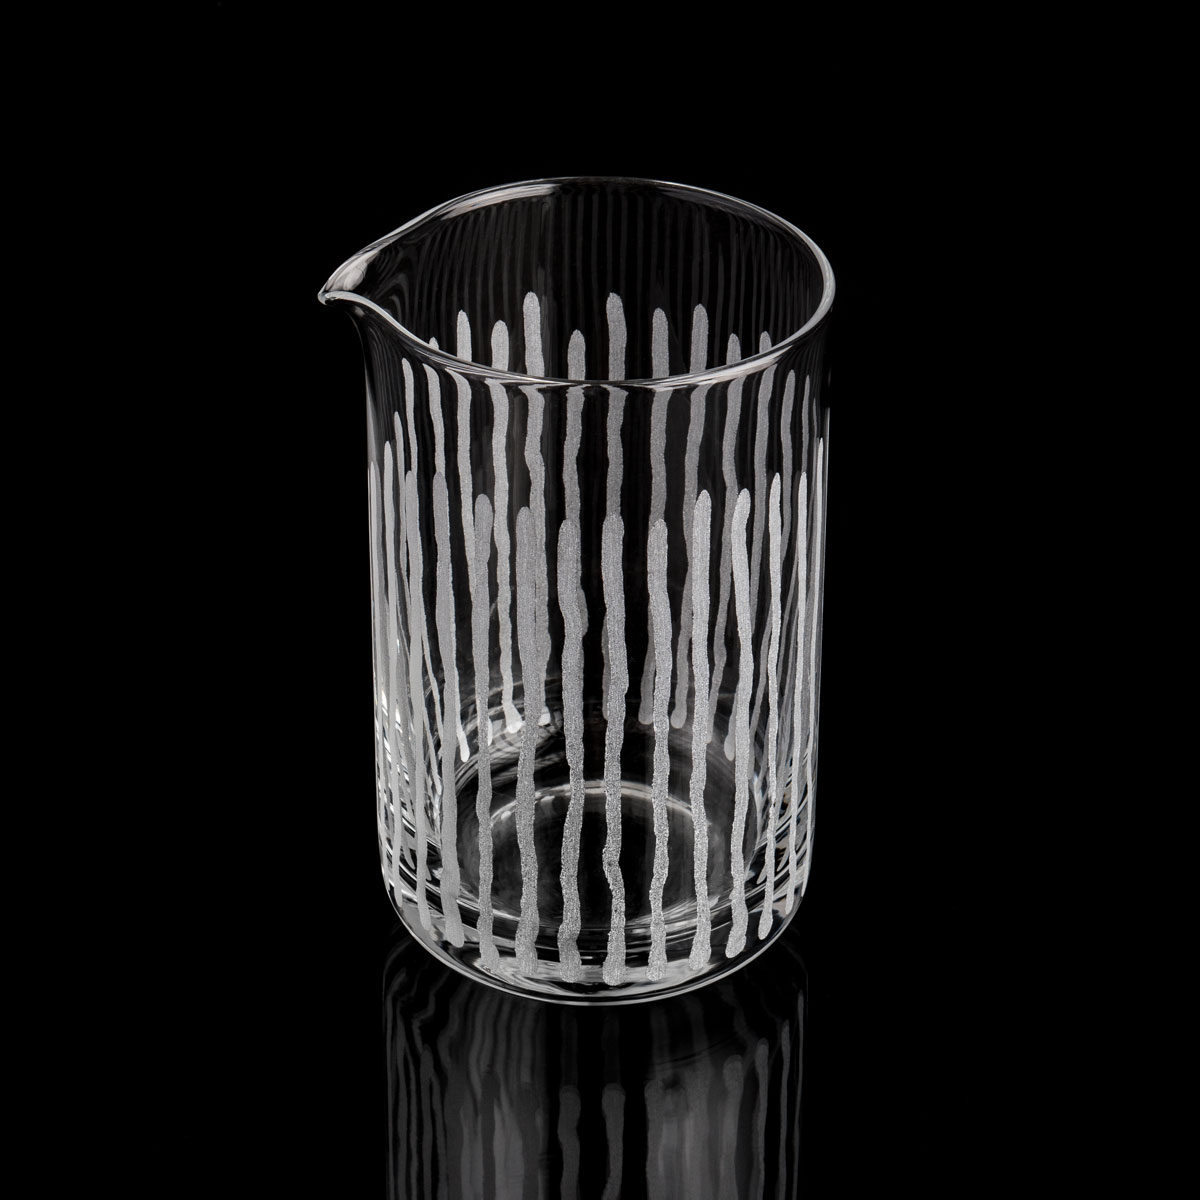 M-TAKA 550ml vertical striped mixing glass